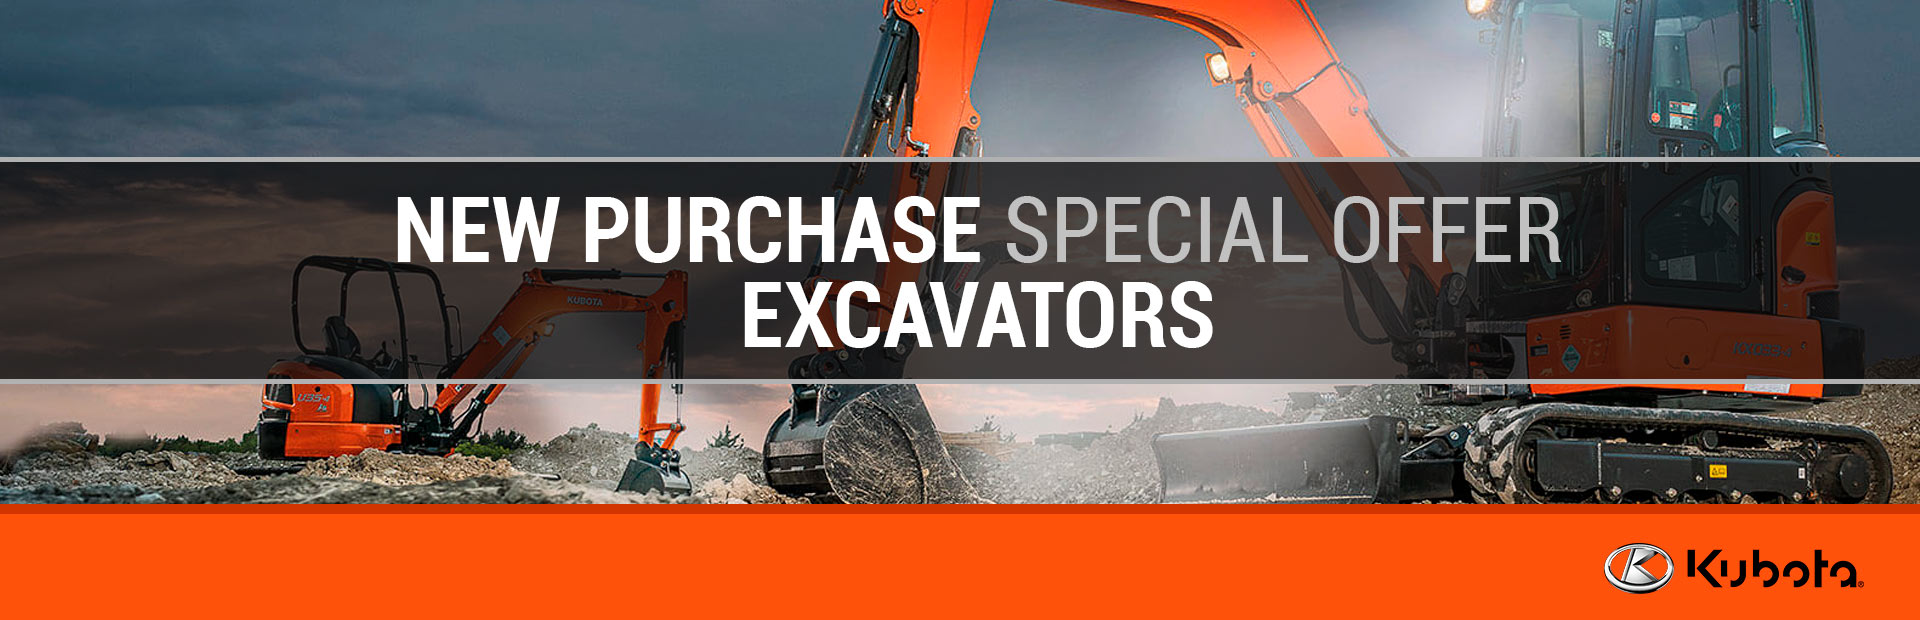 Kubota: New Purchase Special Offer - Kubota Excavators